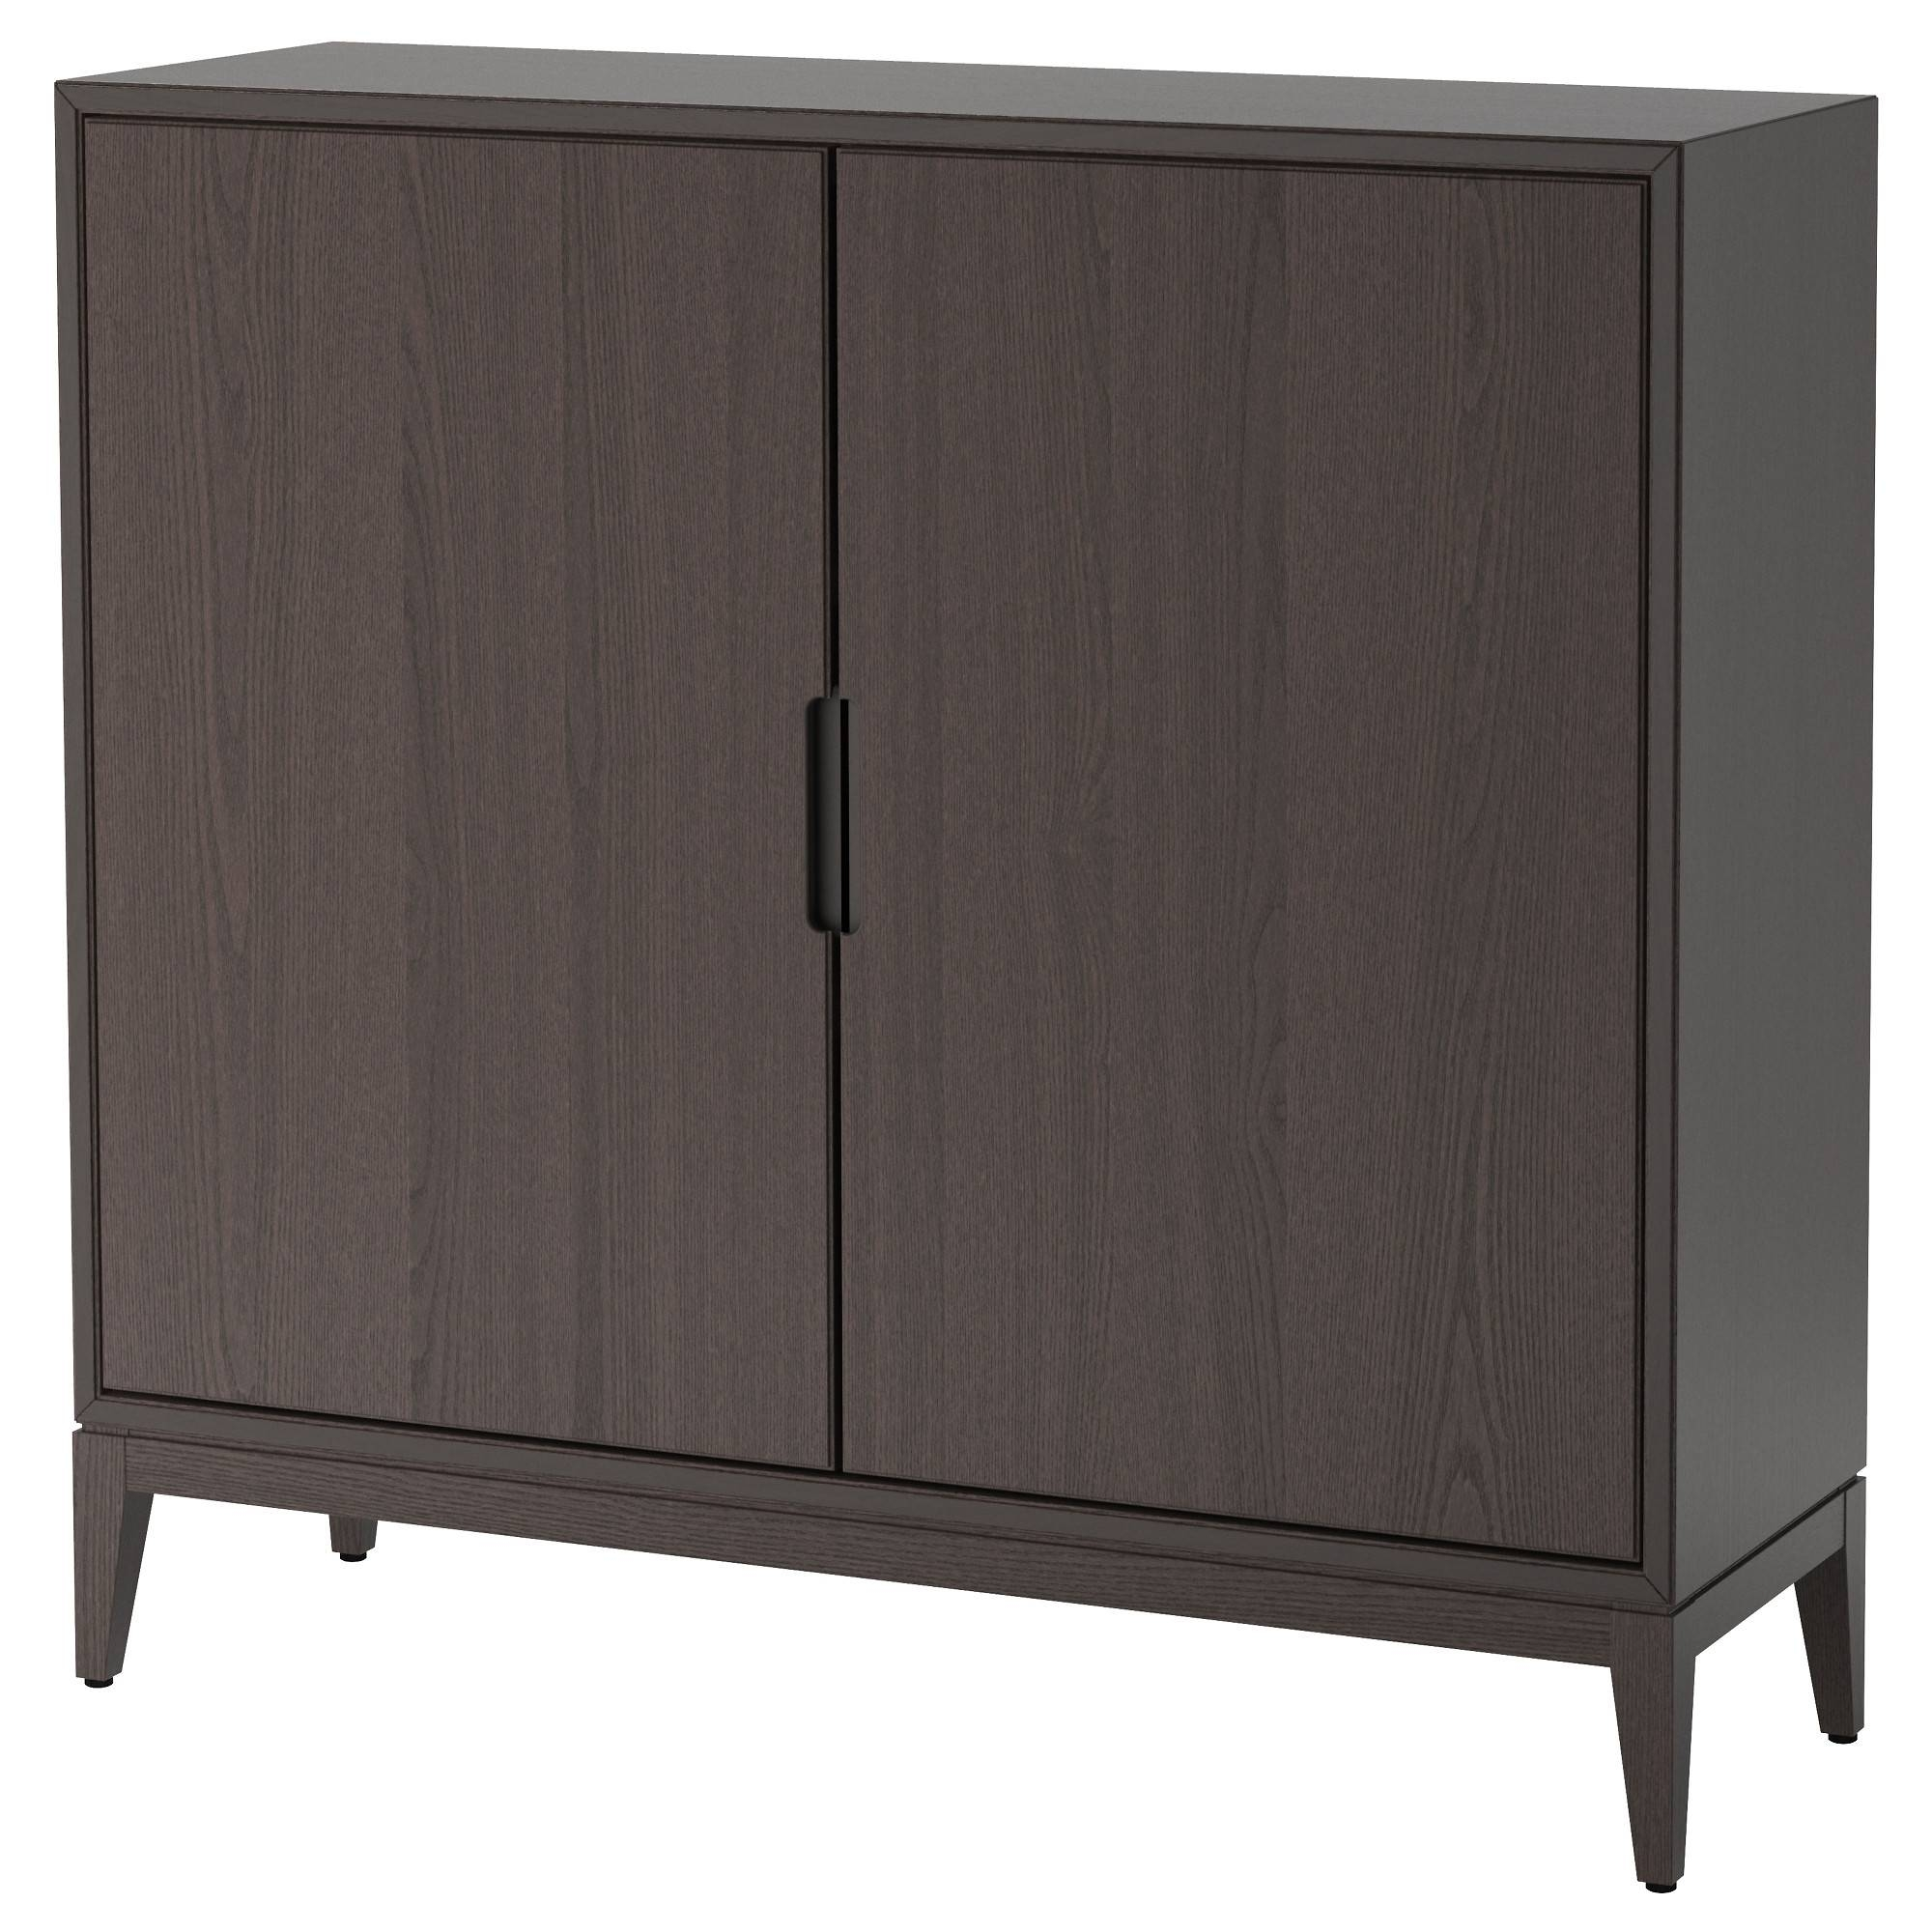 20 collection of shallow sideboard cabinet. Black Bedroom Furniture Sets. Home Design Ideas